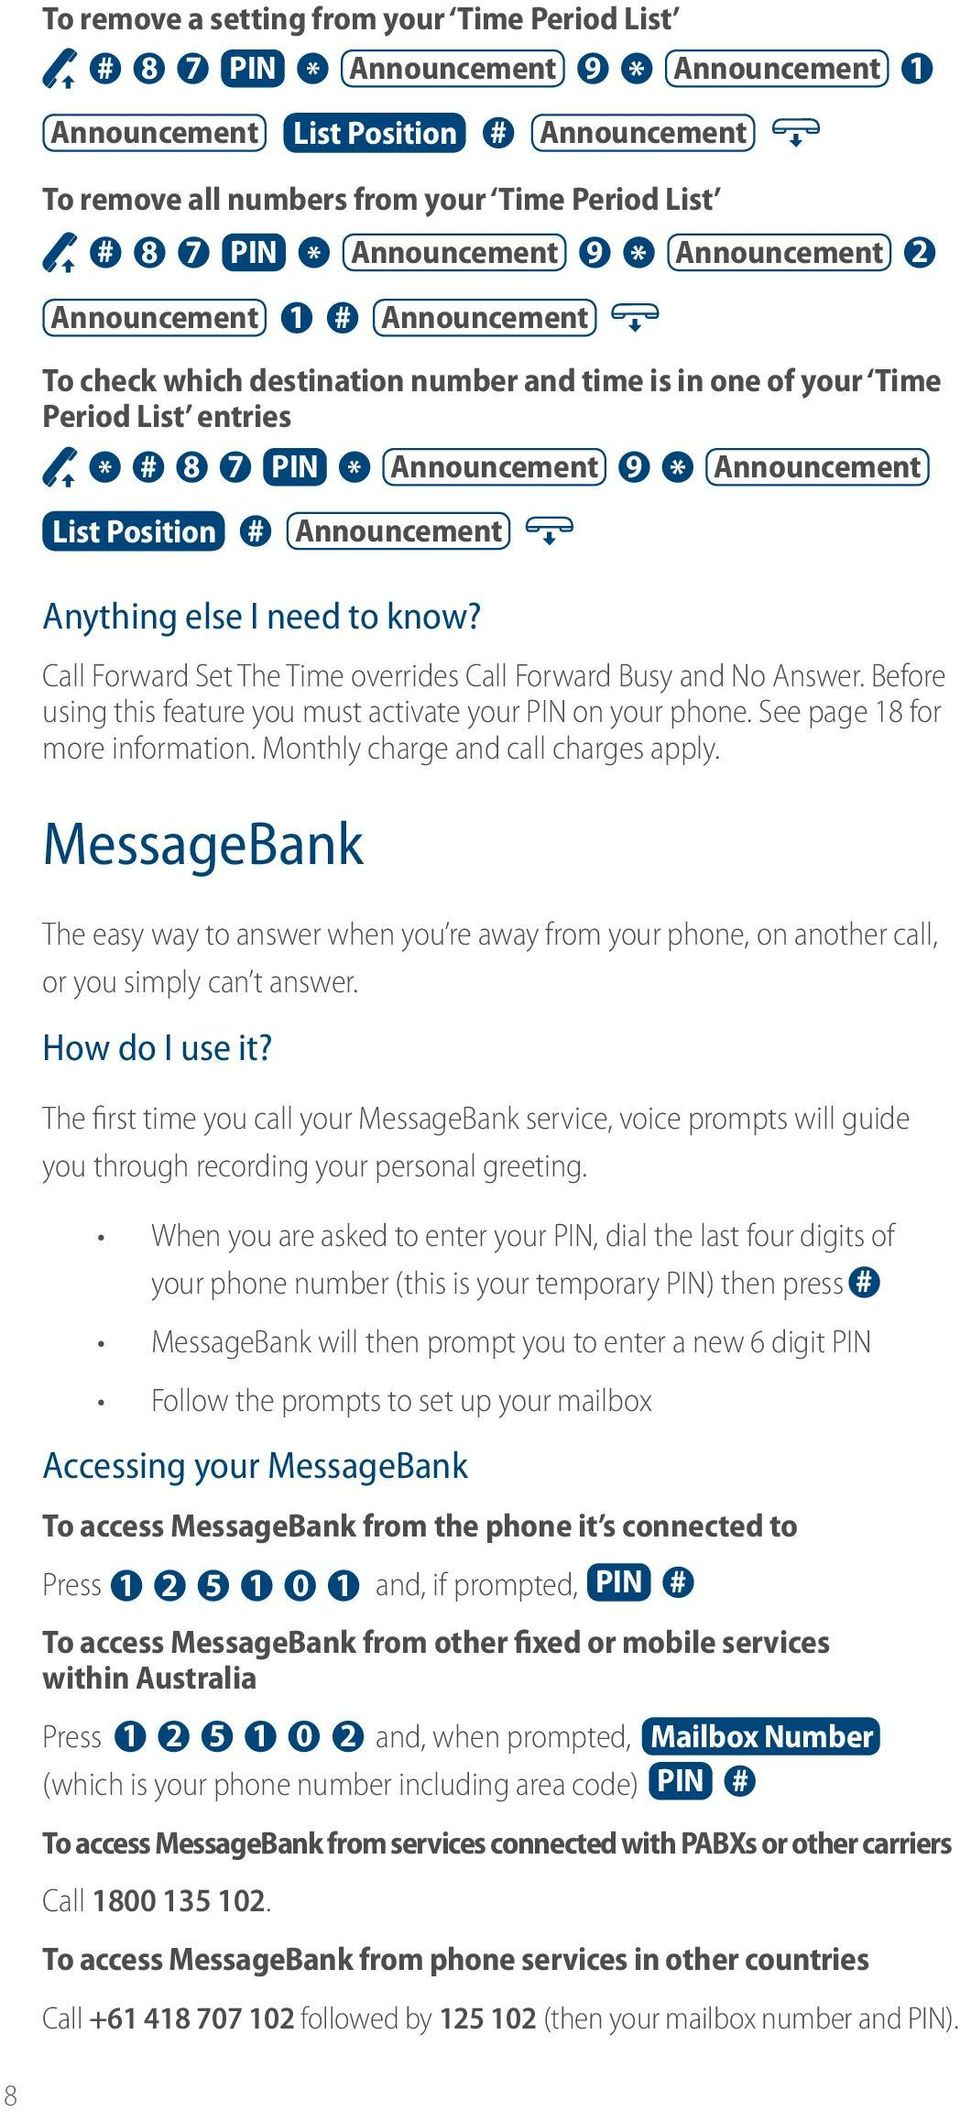 Before using this feature you must activate your PIN on your phone. See page 18 for more information. Monthly charge and call charges apply.